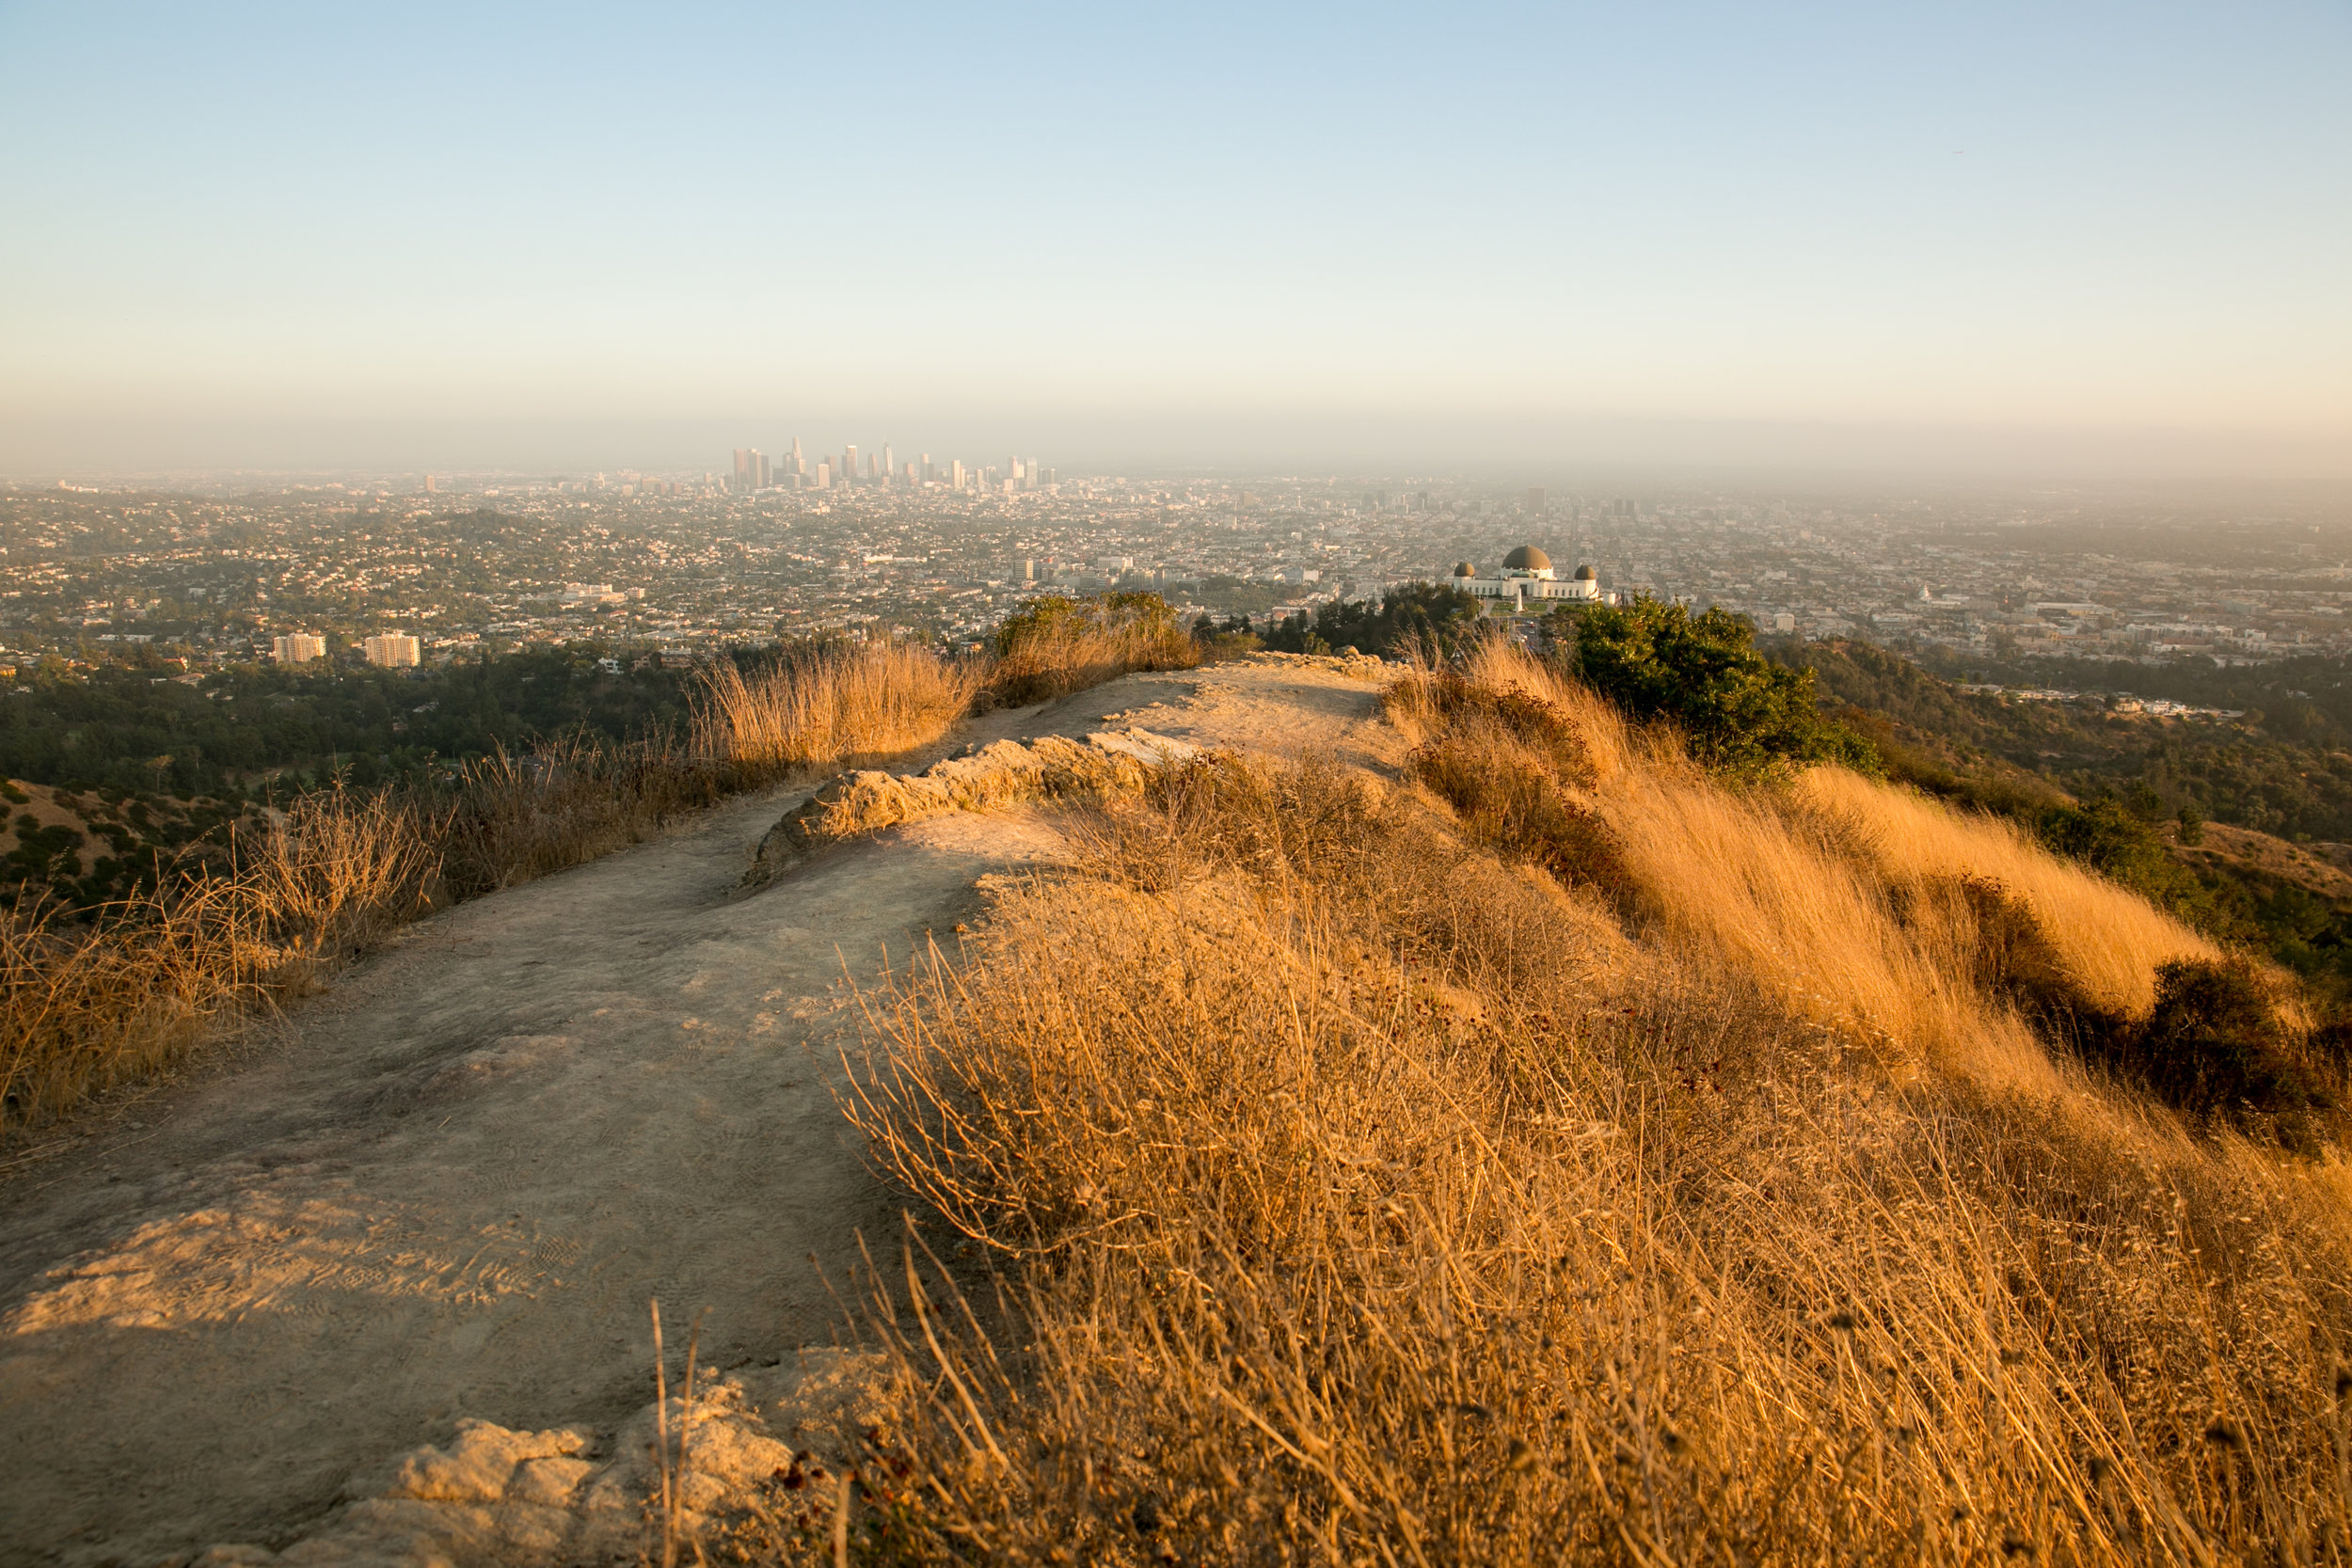 27-2019-proposal-griffith-park-observatory.jpg